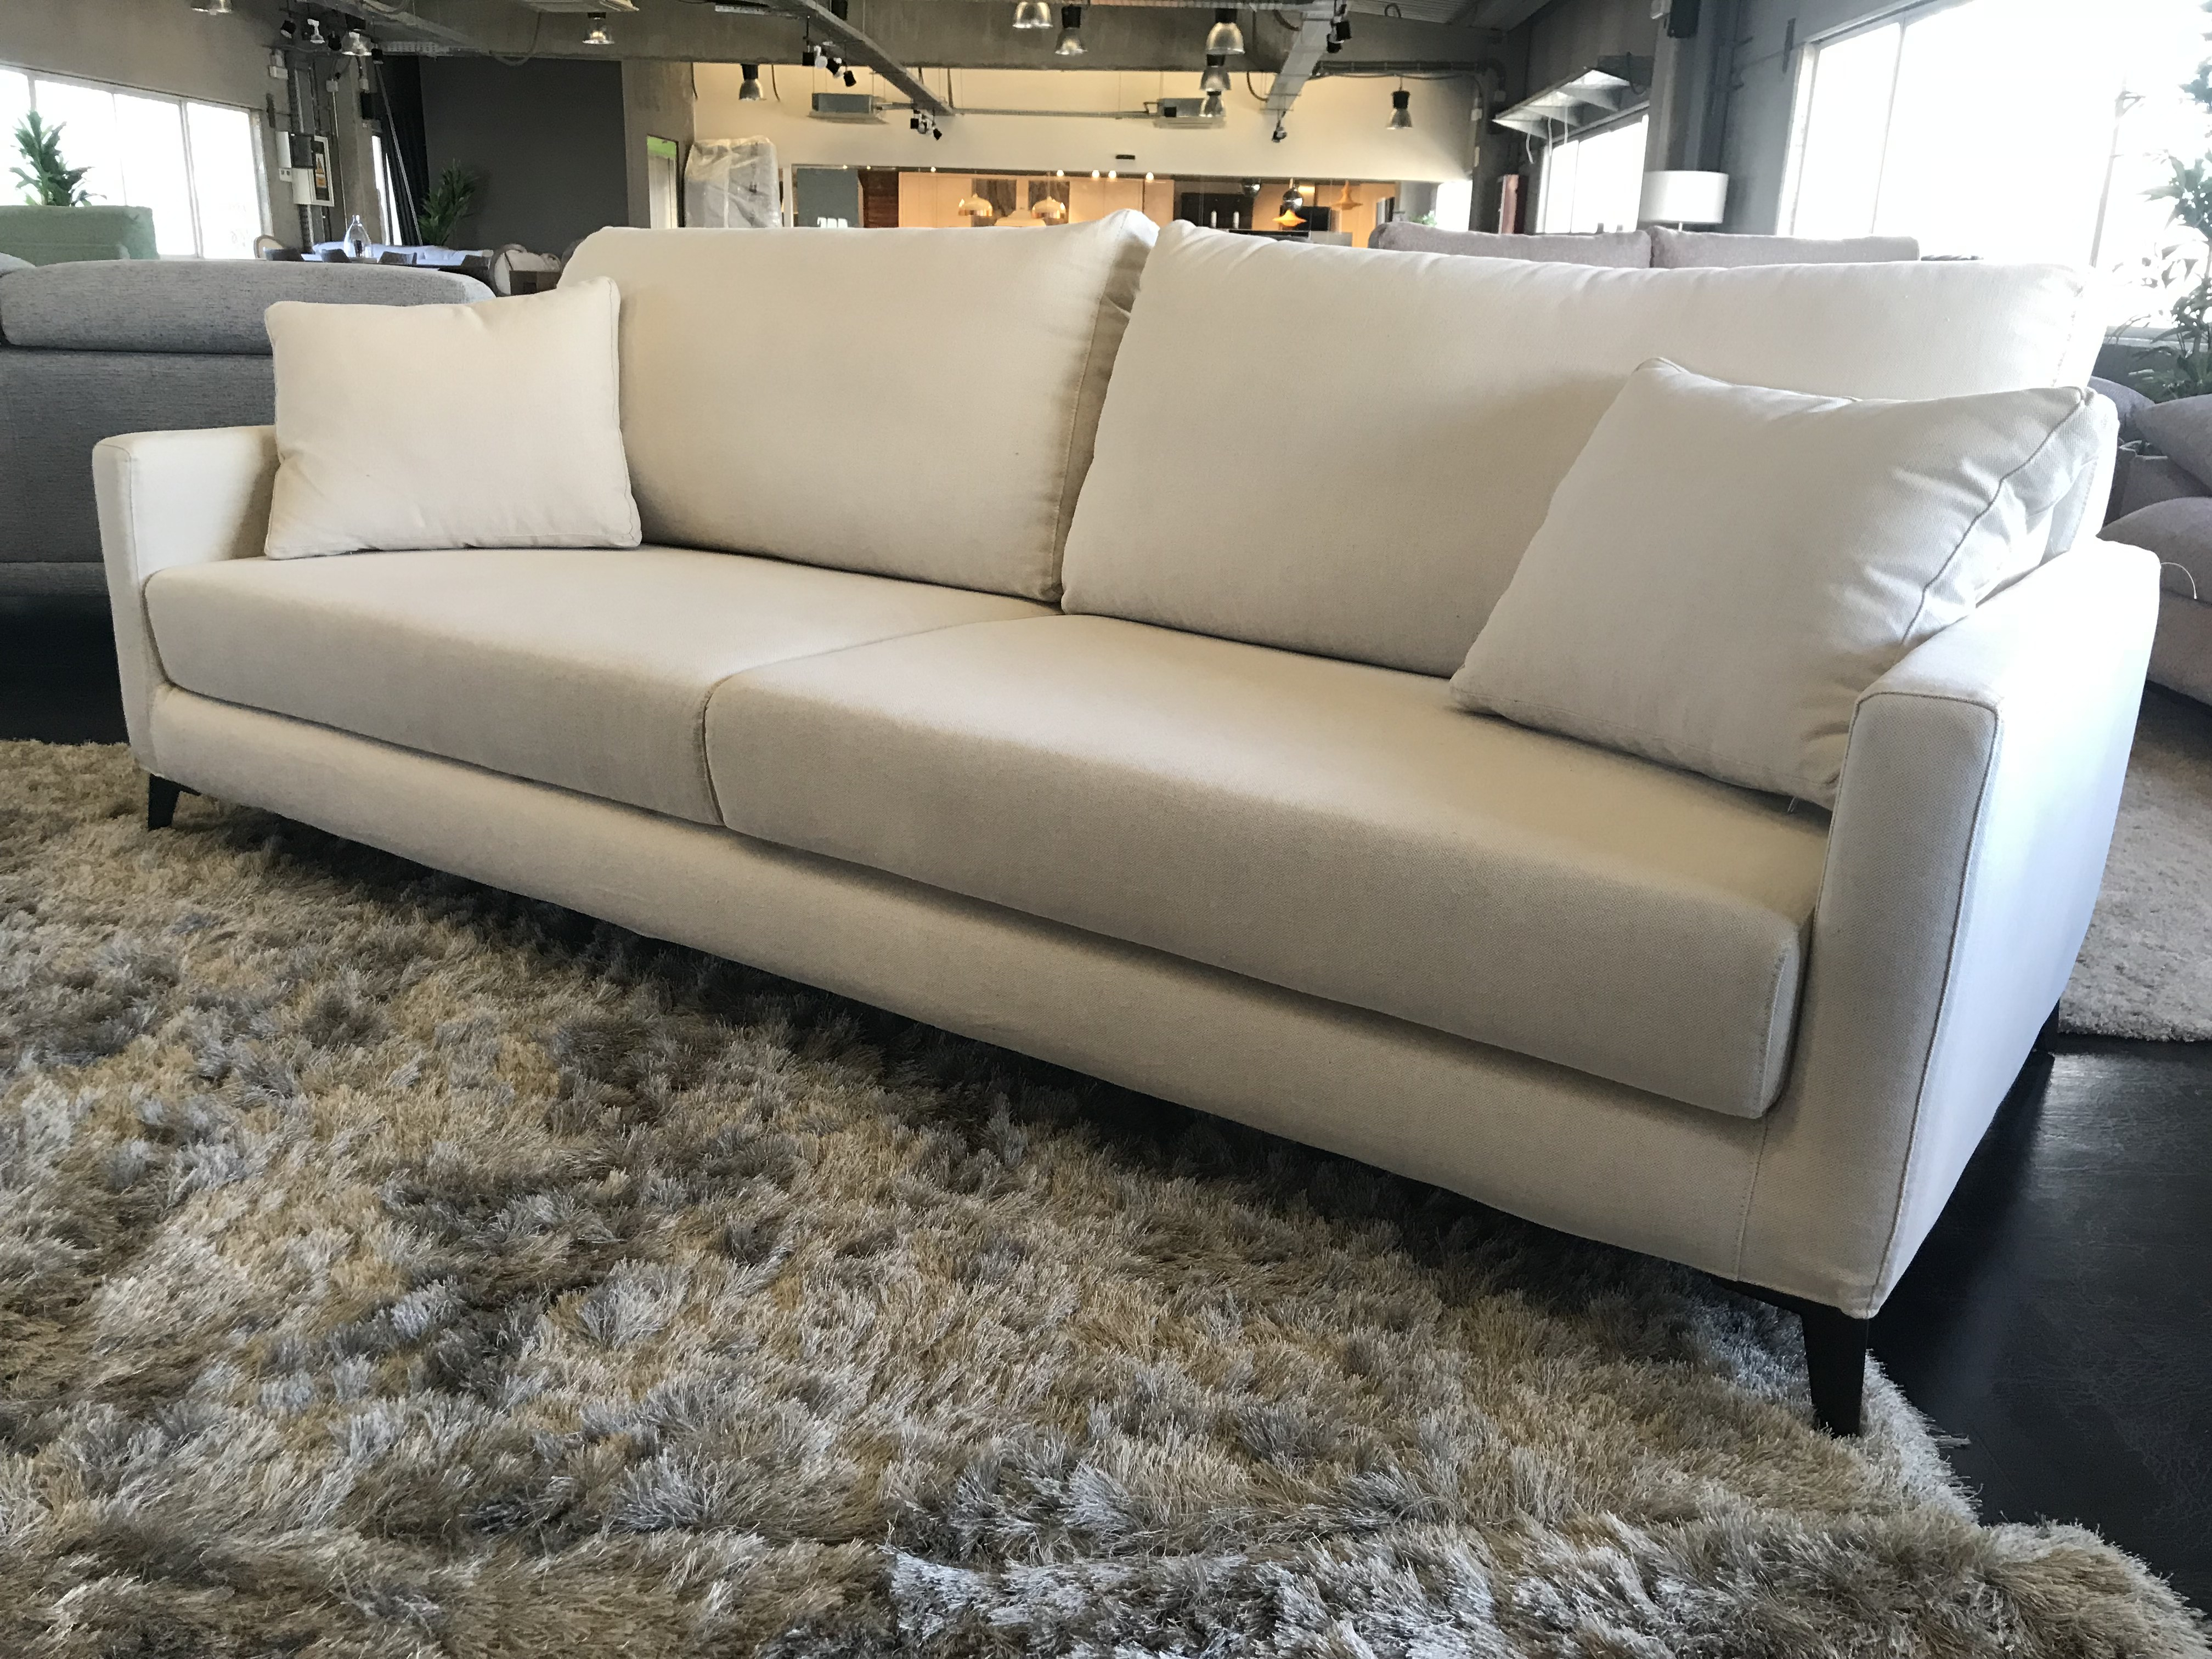 Sofas Outlet Madrid Whdr Outlet the sofa Pany